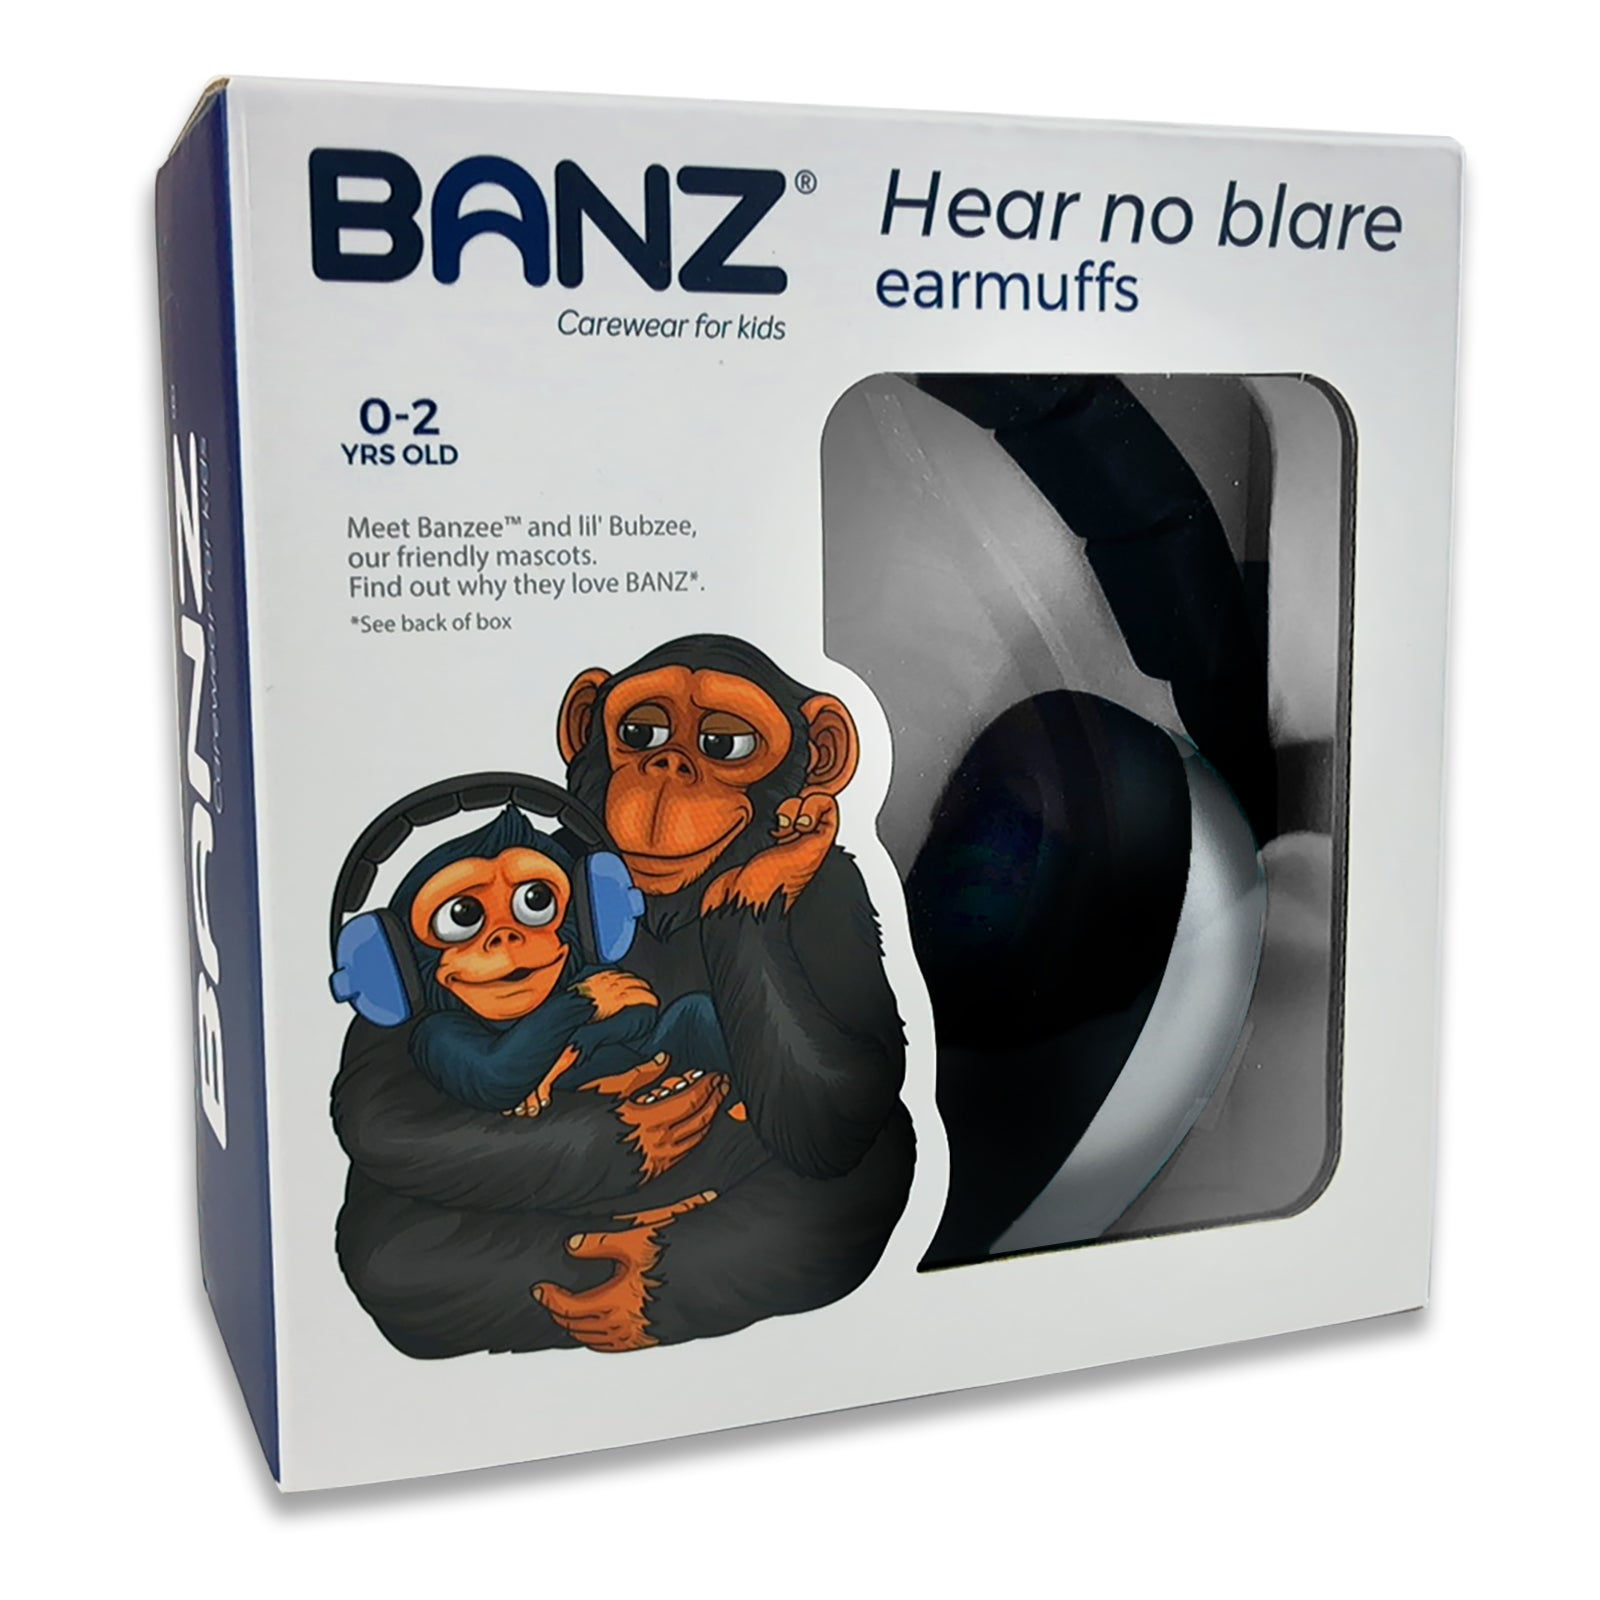 3121abfaf13 Banz - The Protection Experts